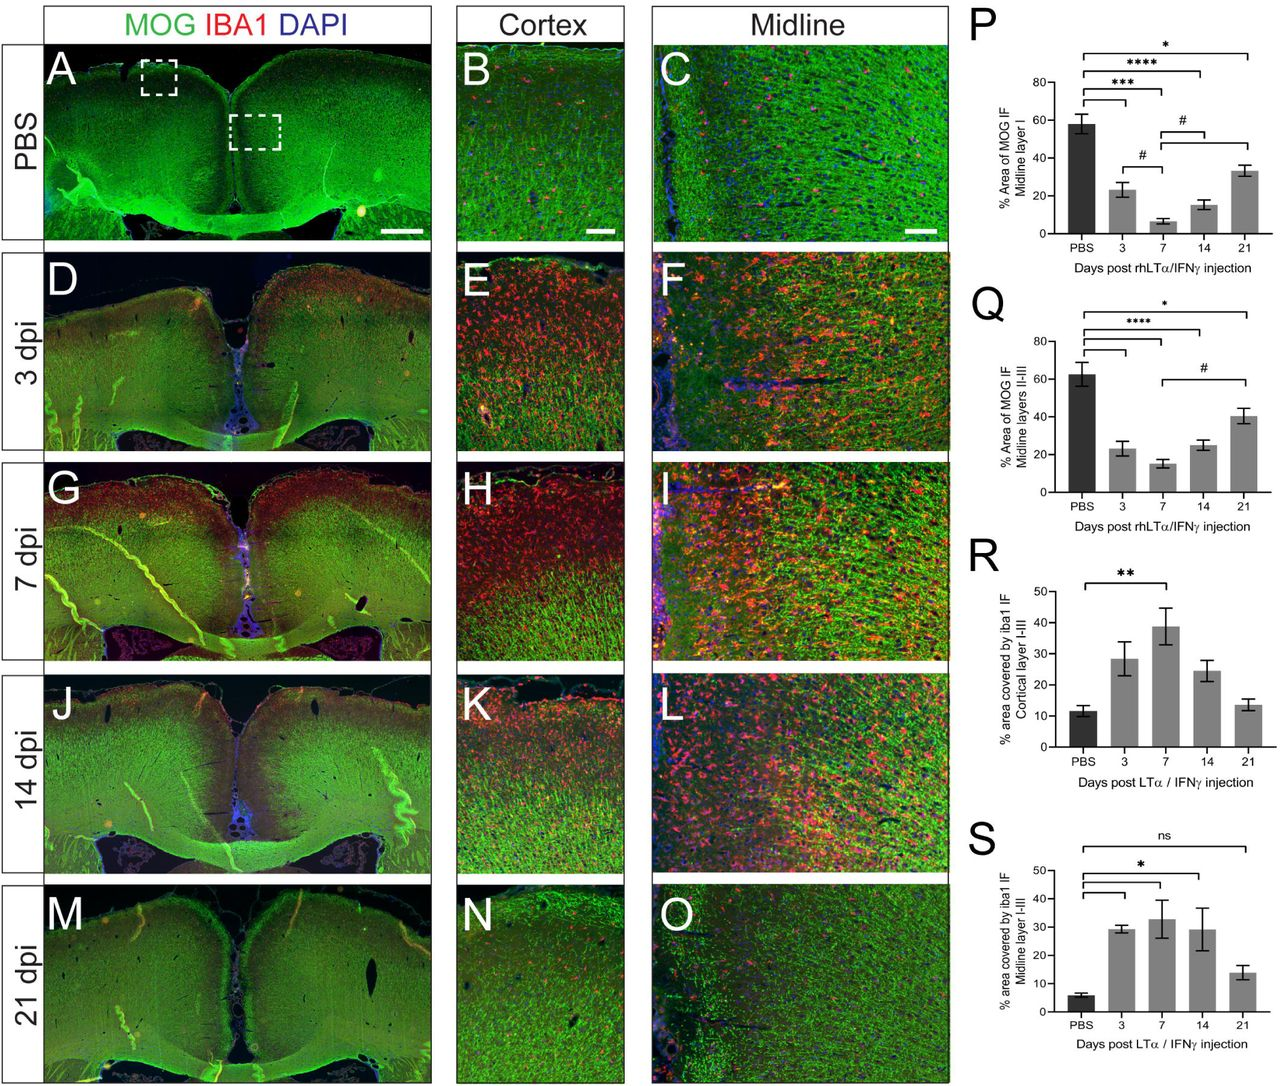 Subpial demyelination following injection of recombinant LTα+IFNγ into the subarachnoid space. (A-O) Immunofluorescence for myelin oligodendrocyte glycoprotein (MOG) and the microglial marker IBA1 in rmMOG immunised rats injected with PBS (A-C) or 1mg LTα and 75ng IFNγ recombinant cytokines culled at 3 (D-F) , 7 (G-I) , 14 (J-L) and 21 (M-O) days post-cytokine injection (dpi), demonstrating the degree of demyelination and microglial activation at various times points. Cortex and midline images are magnifications of the regions shown by the boxed areas in image A. Scale bars: A = 500µm, B and C = 50µm. (P-Q) Quantification of subpial demyelination at the injection site in layer I (P) and layers II-III (Q) , presented as the percentage area covered by MOG immunofluorescence (IF) (n=3-4 each group). Data is presented as the mean ± SEM. Statistics: 1-way analysis of variance with Tukey post-test. * P